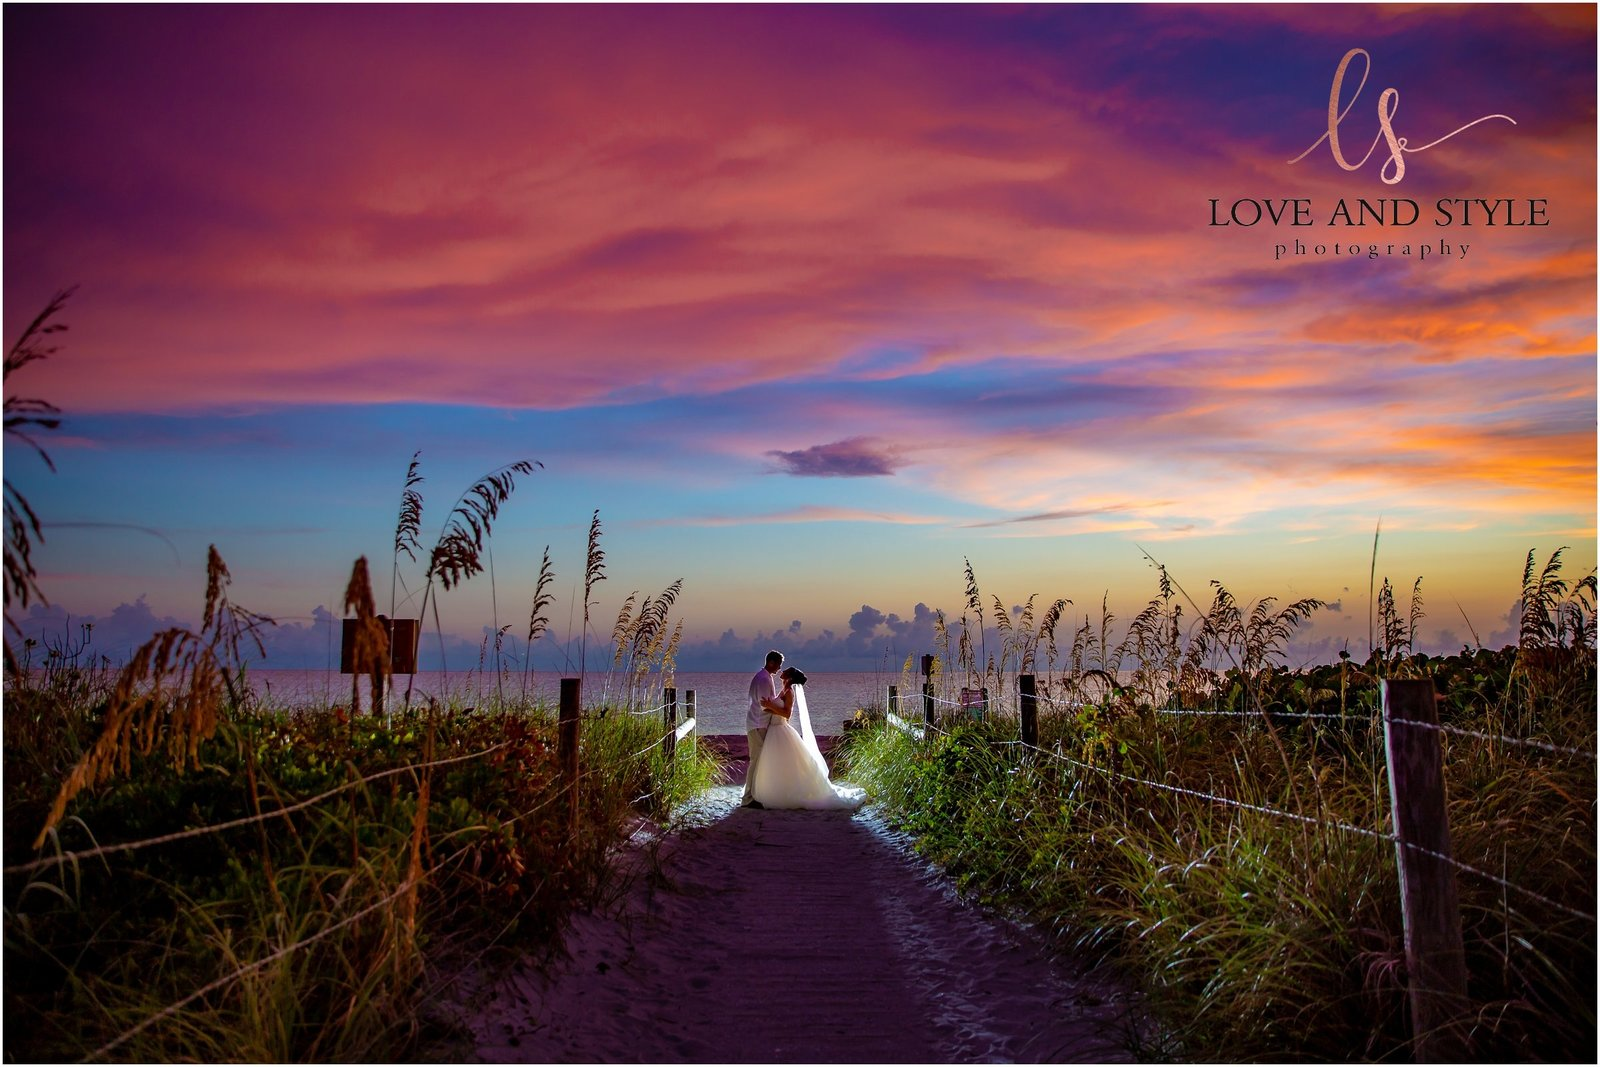 Bride and Groom backlit at sunset on a beach path on Anna Maria Island